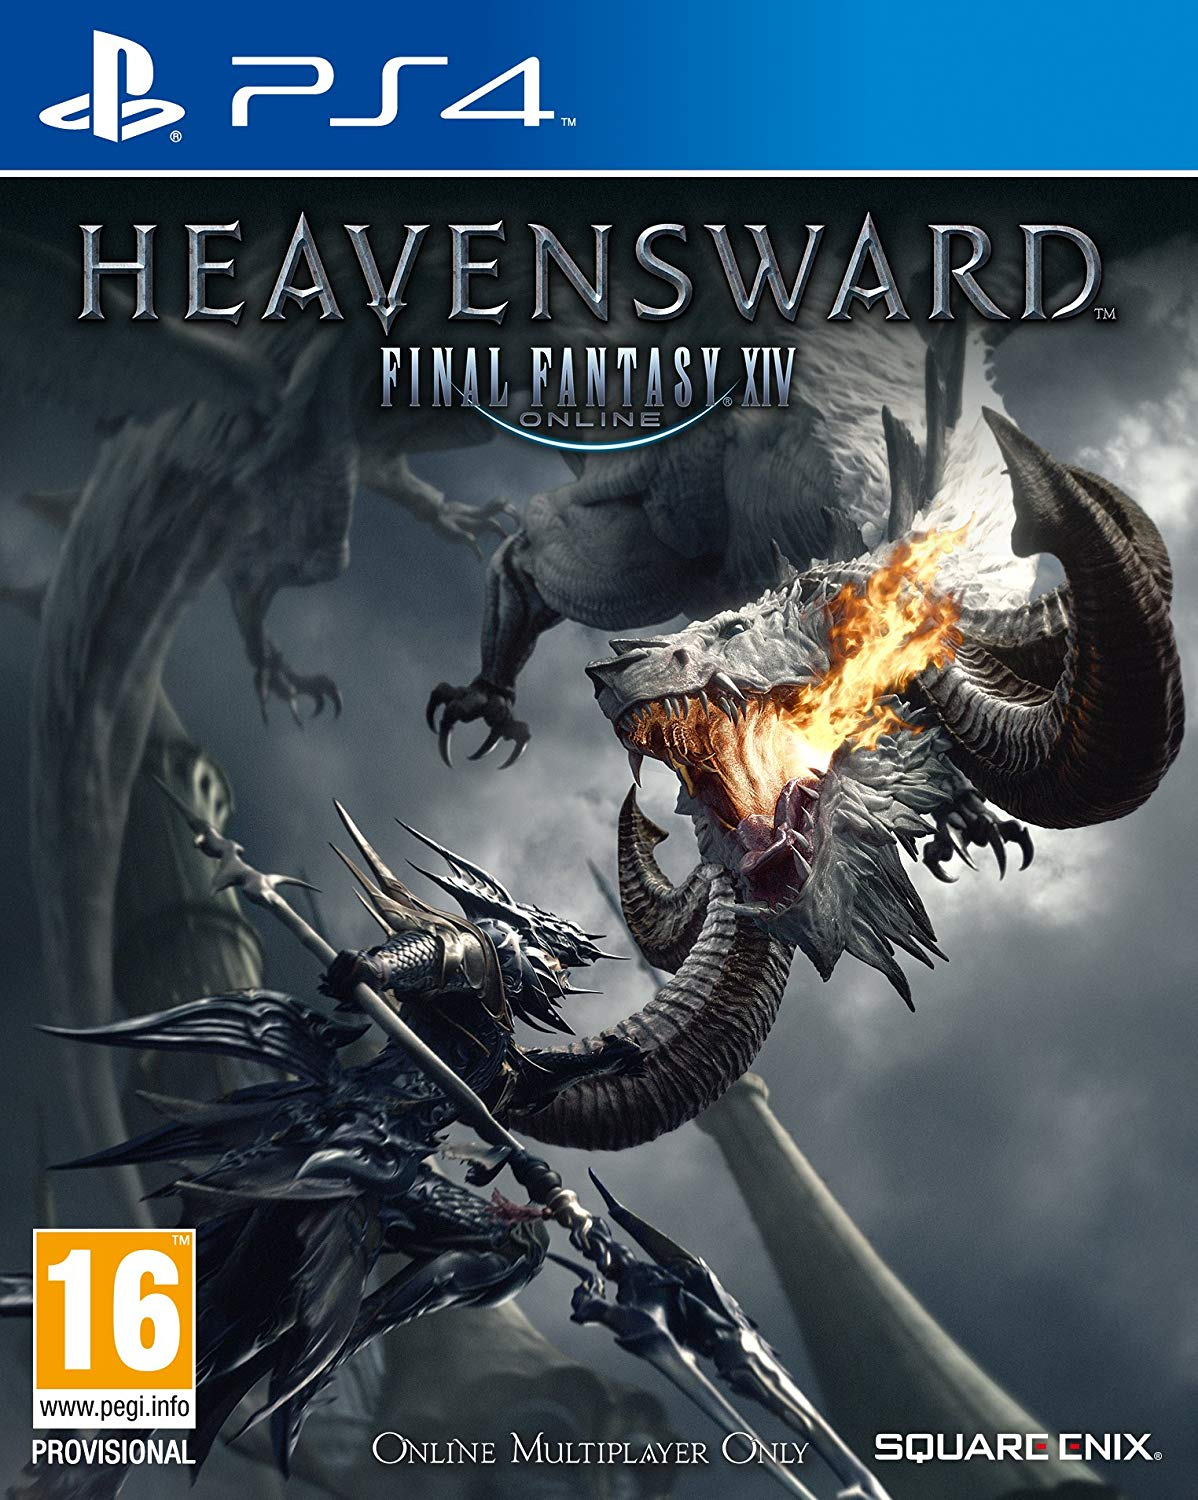 FINAL FANTASY XIV: HEAVENSWARD (Online) - PS4